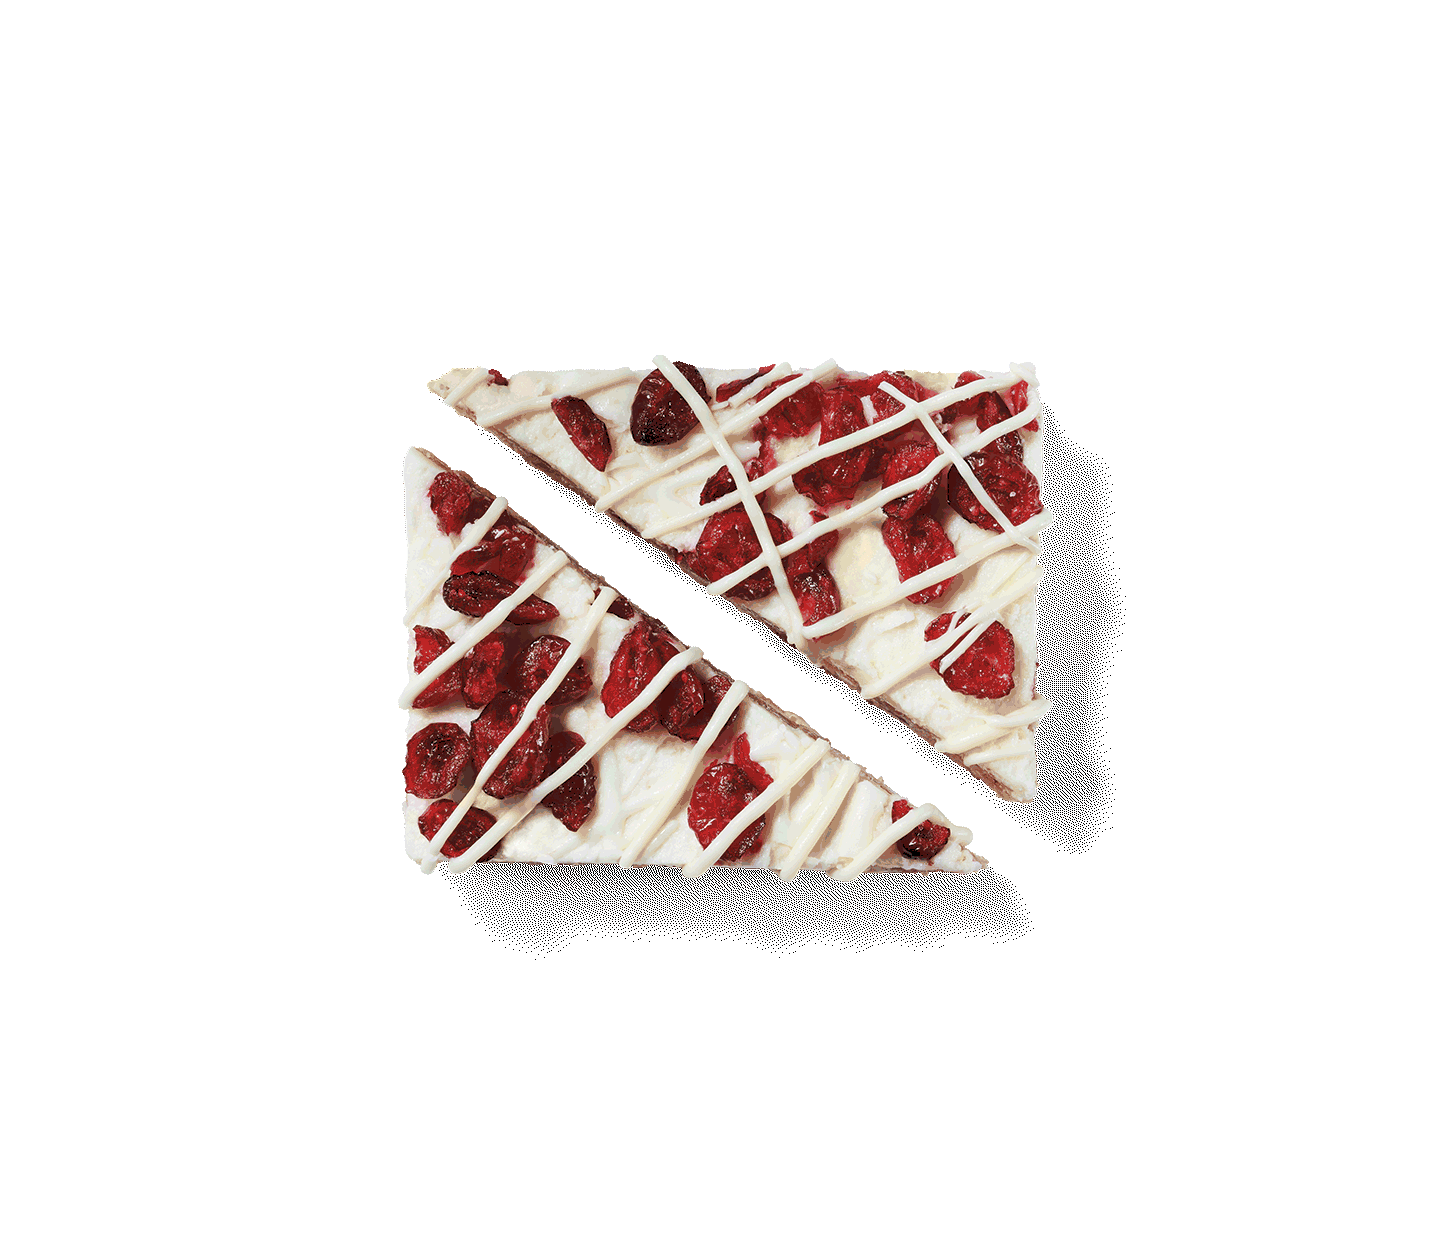 A Cranberry Bliss® Bar cut into triangles